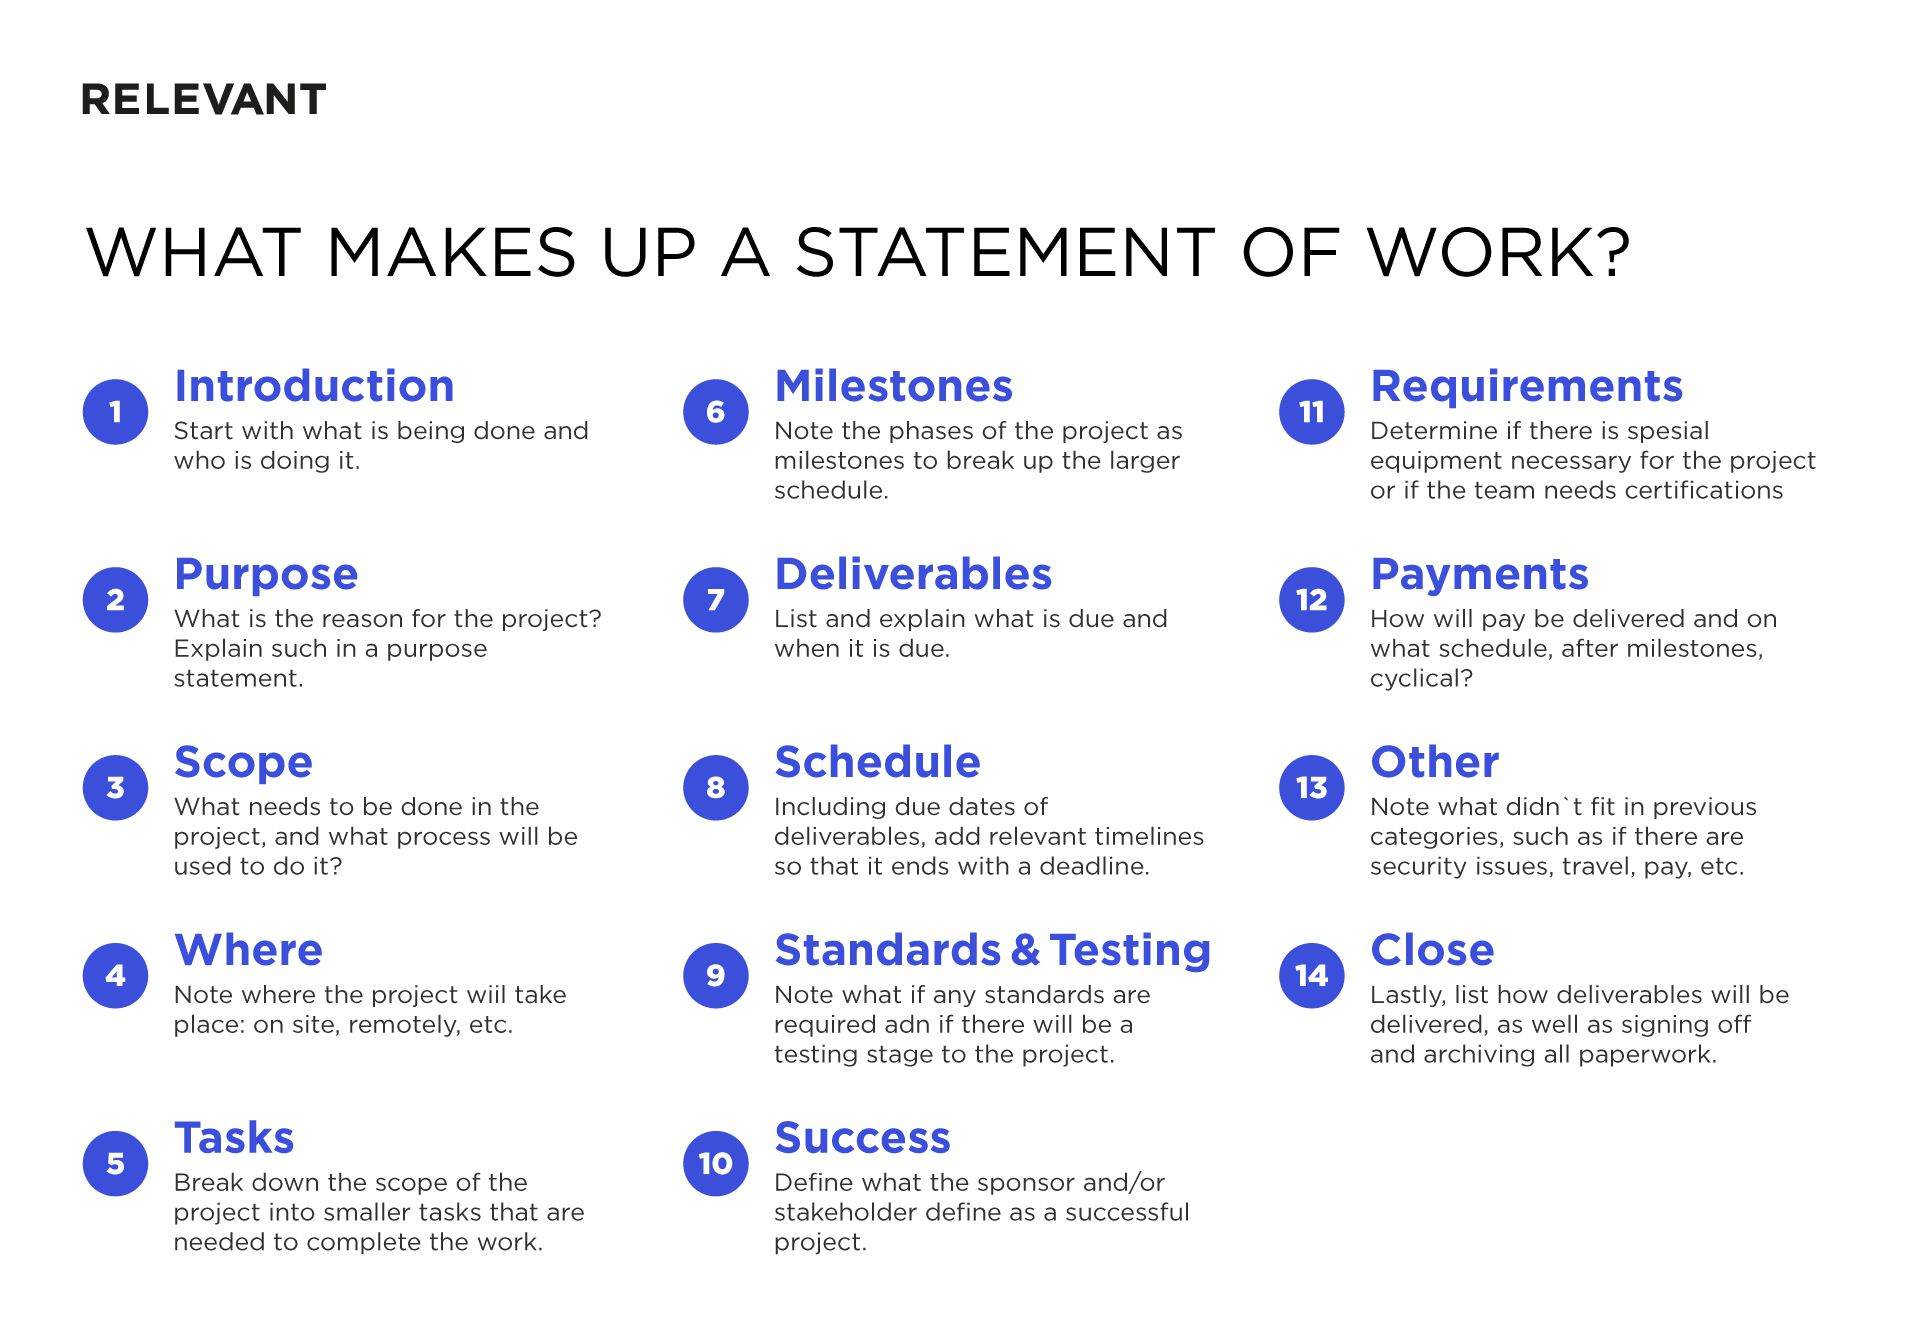 006 Fascinating Sample Statement Of Work Consulting Service Design Full